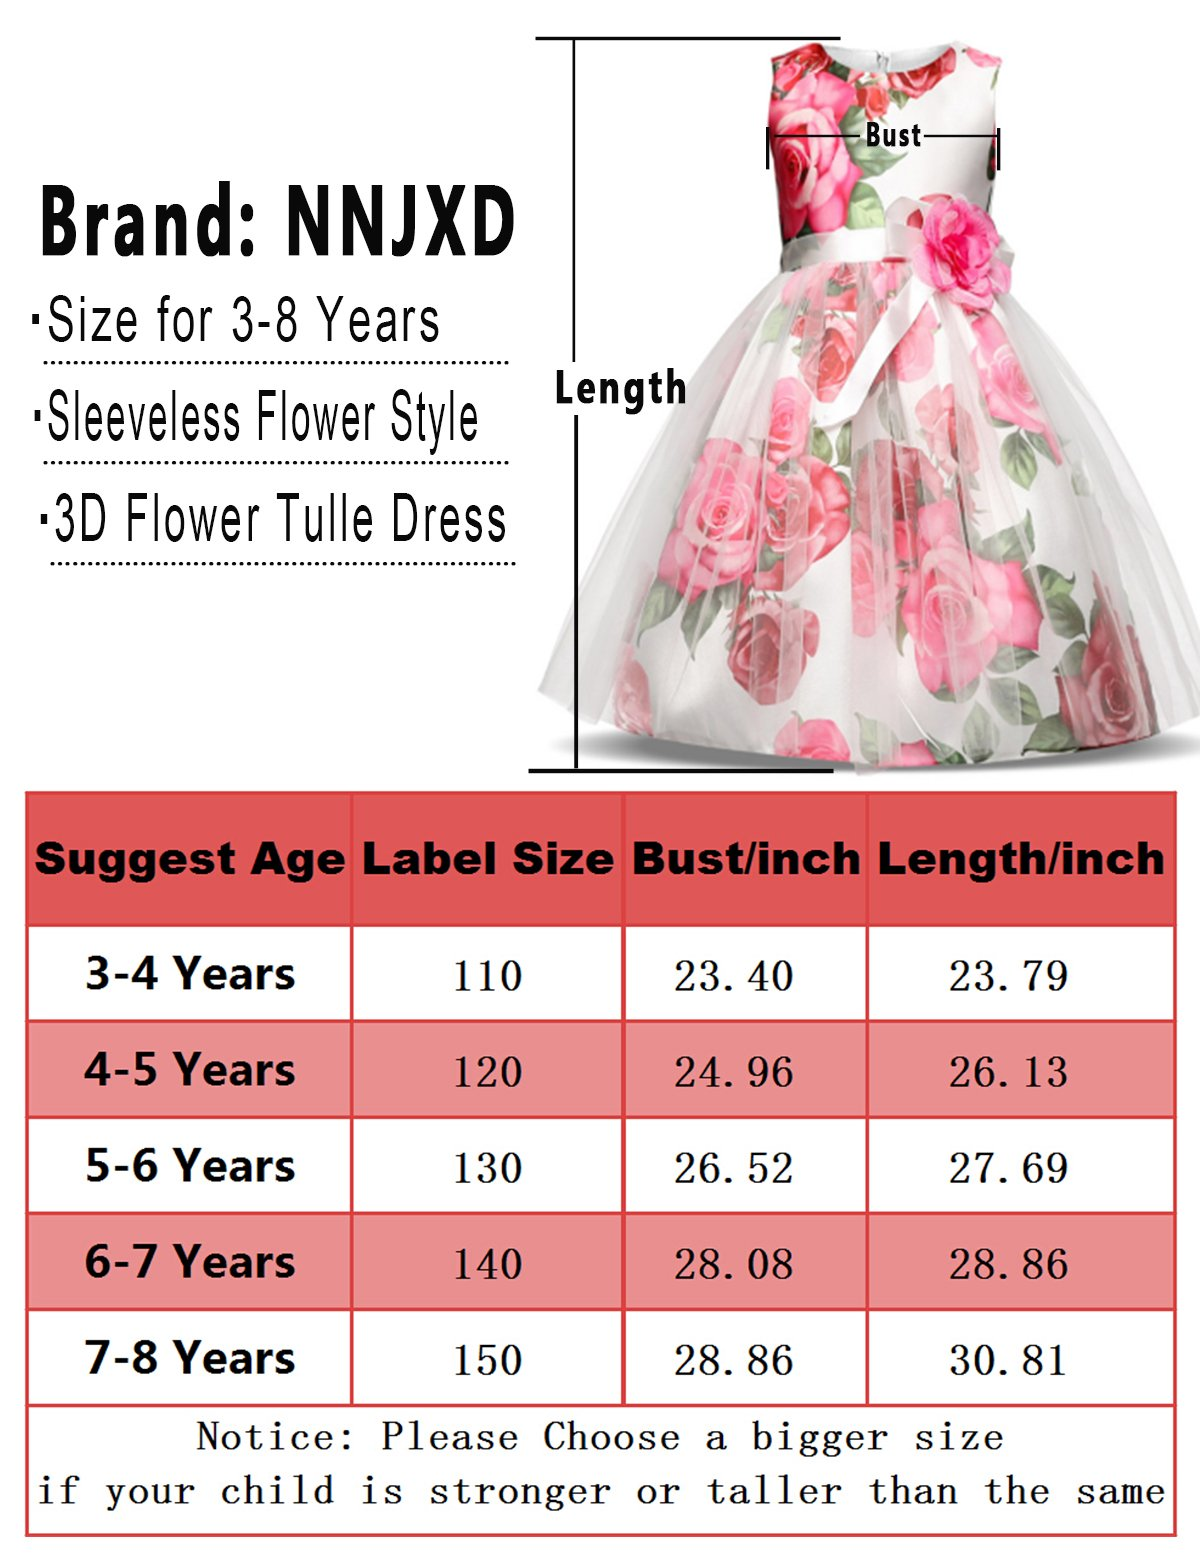 NNJXD Girl Flower Printed Cotton Elegant Tulle Bow Belt Princess Dress Size (130) 5-6 Years Pink by NNJXD (Image #7)